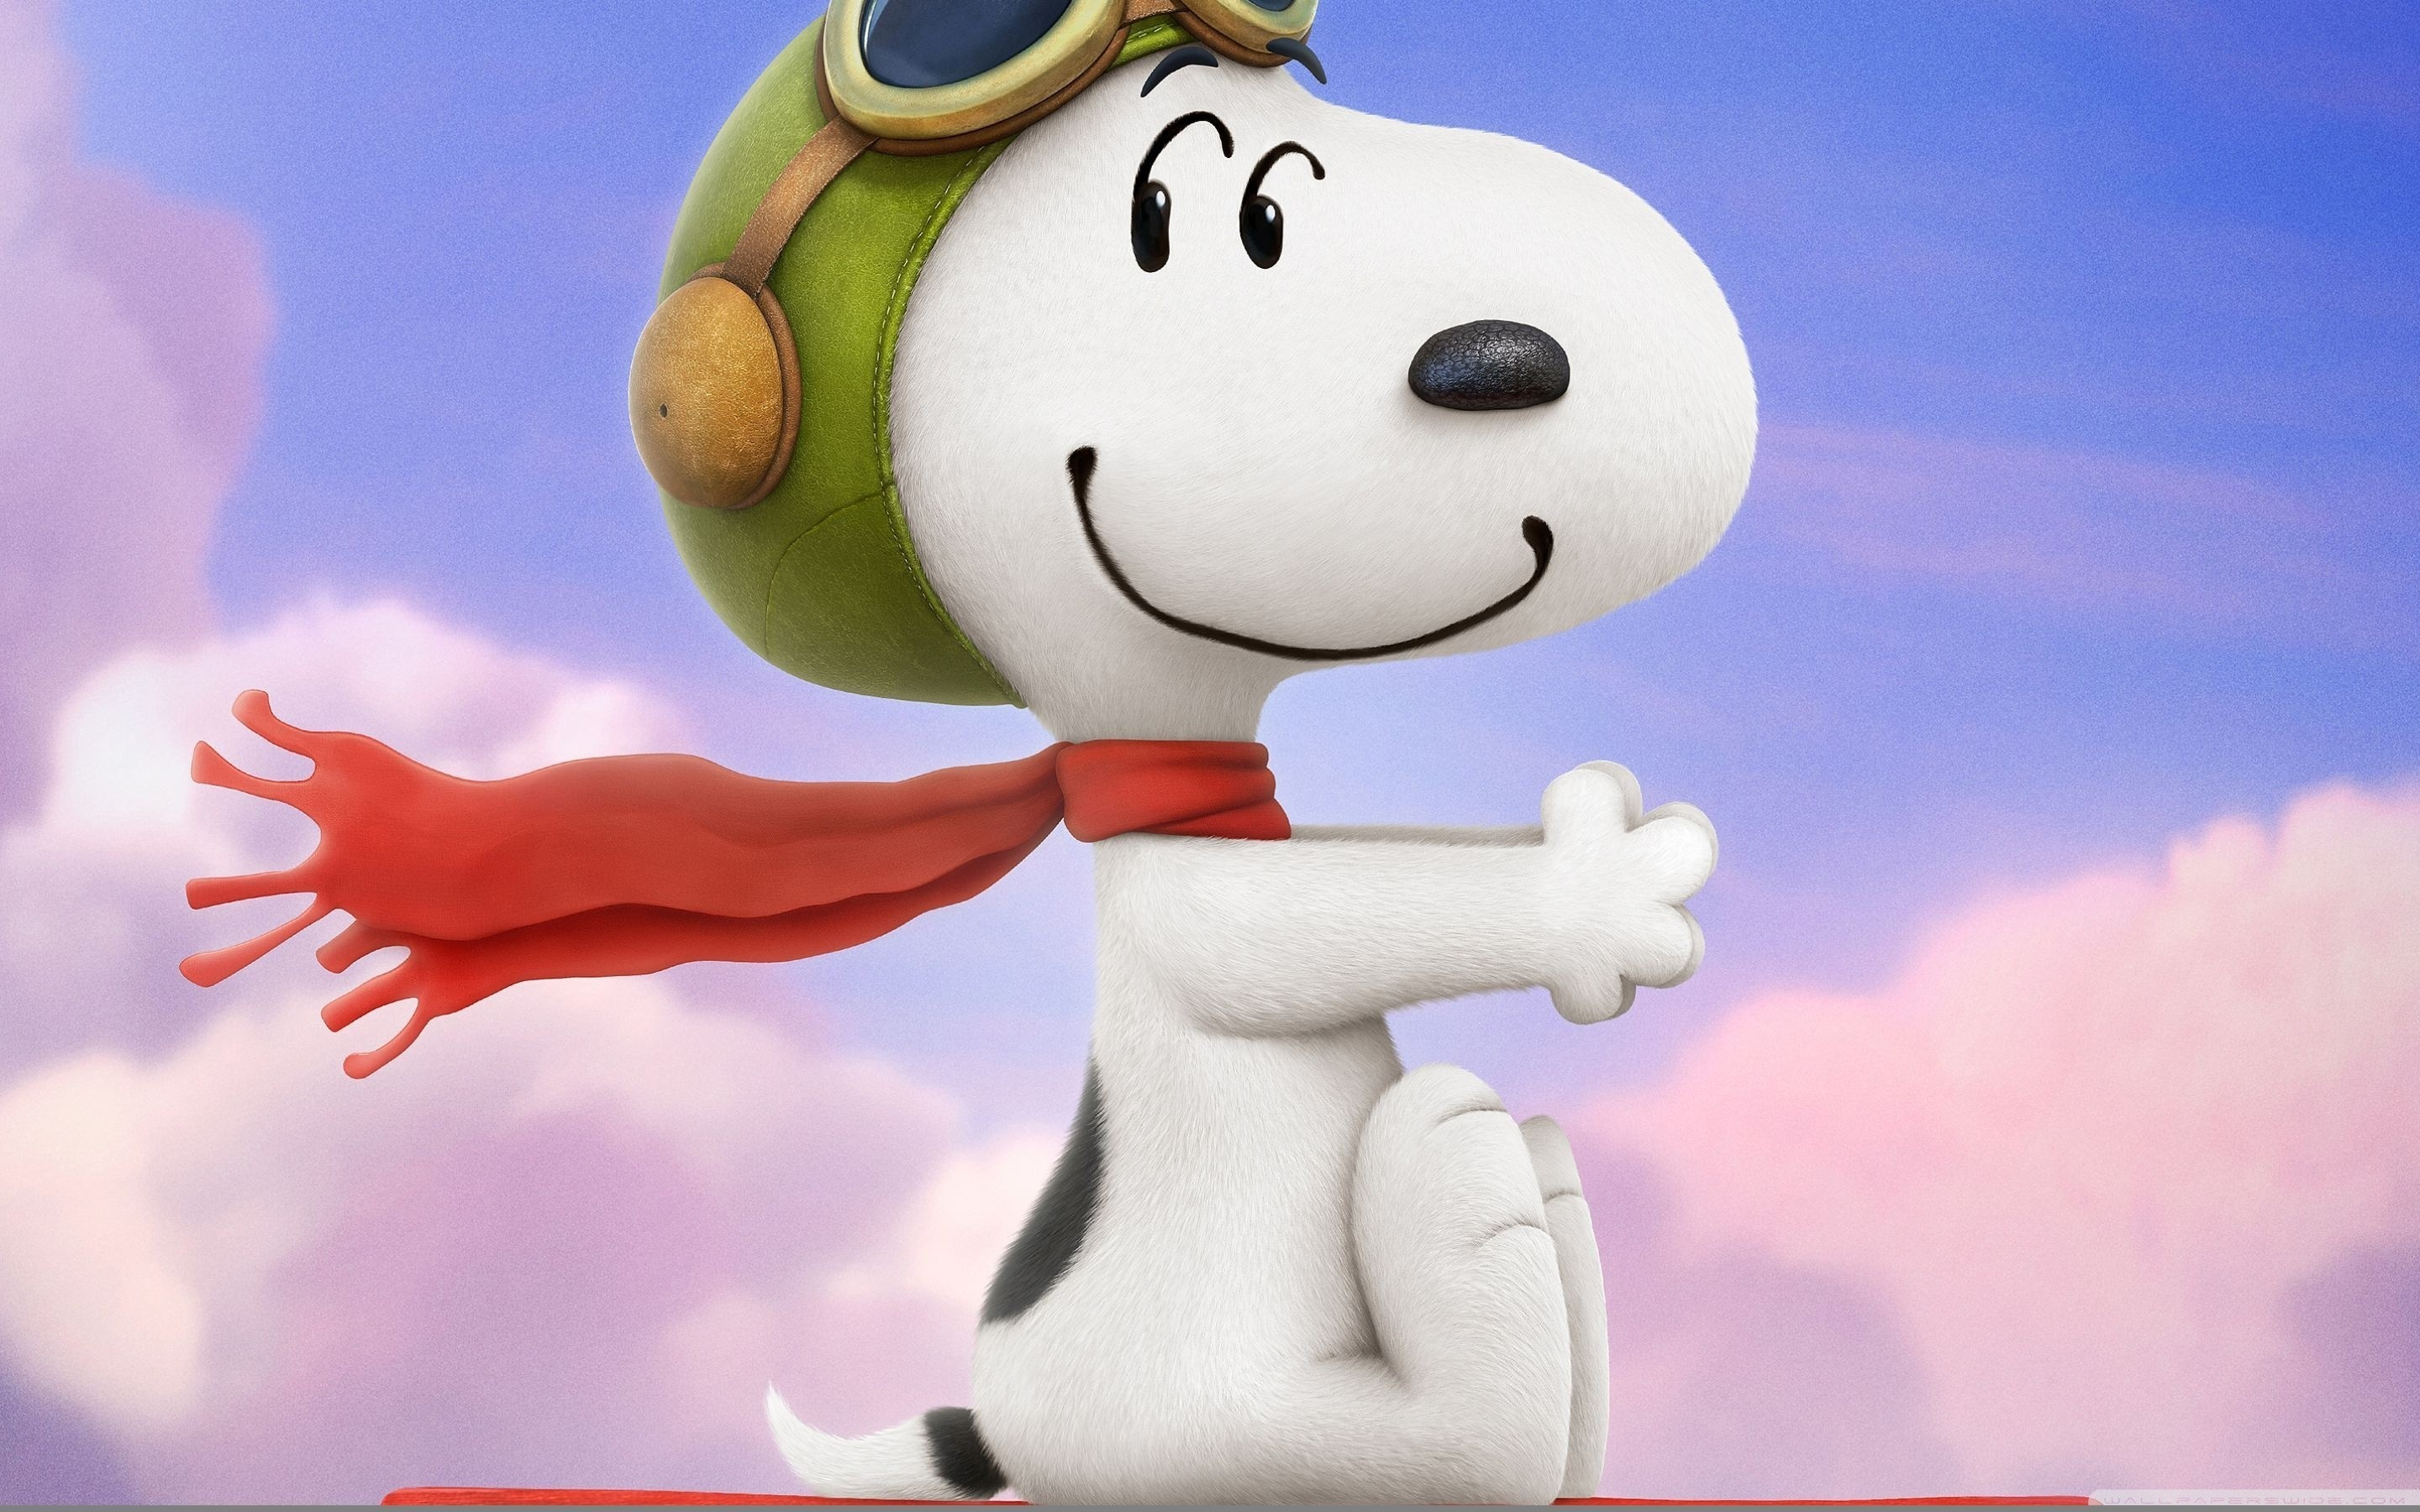 snoopy wallpaper ·① download free high resolution backgrounds for